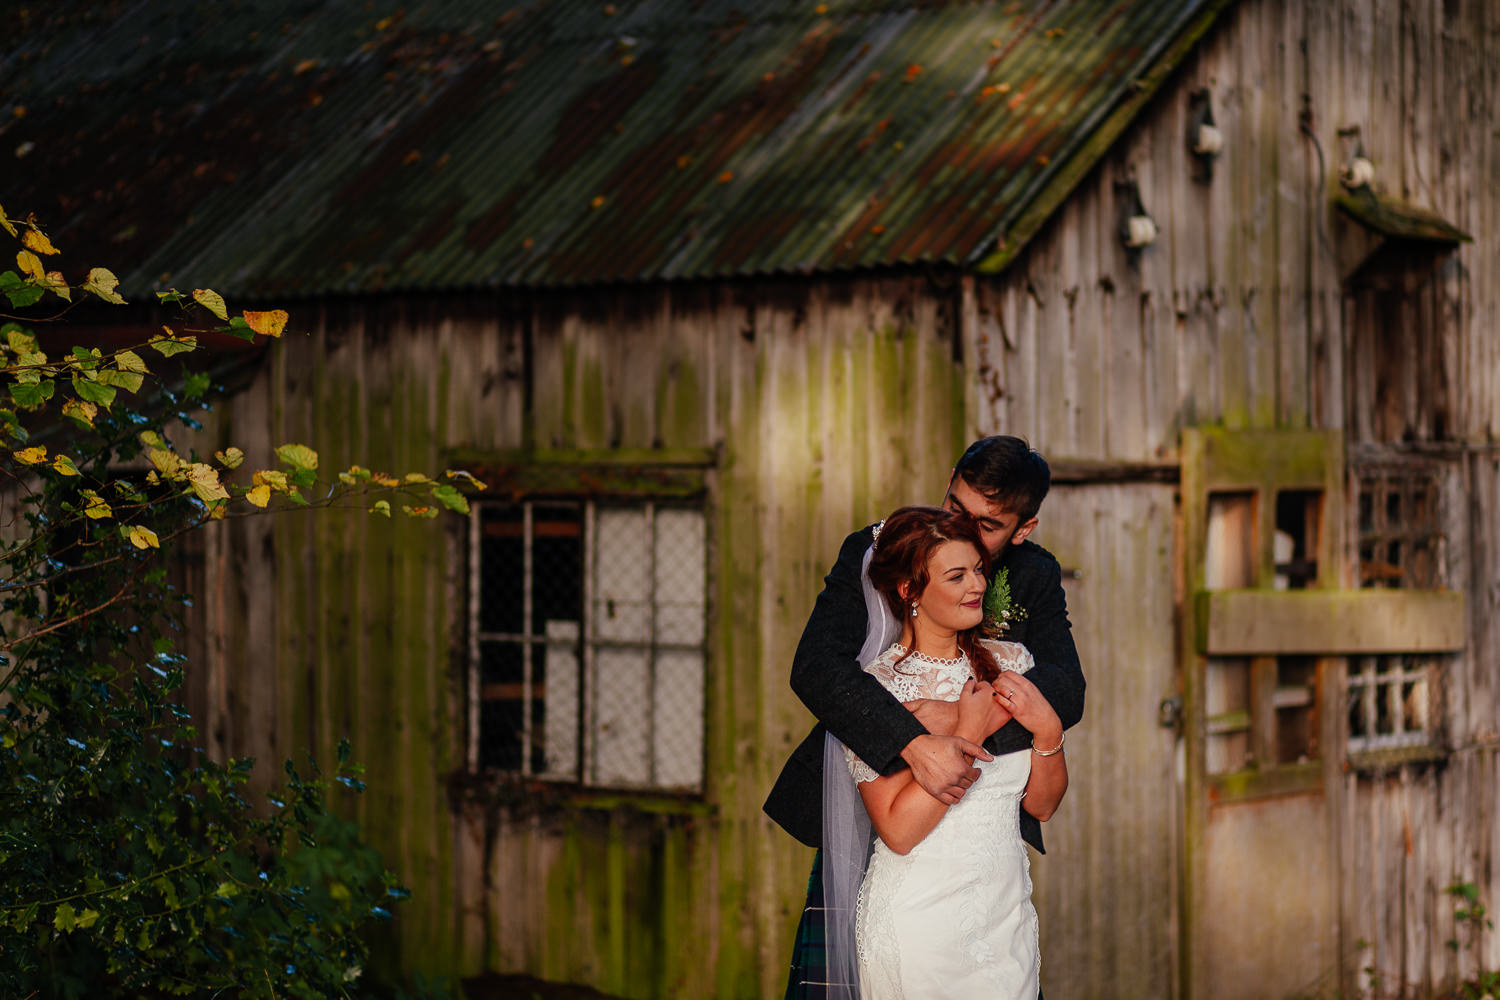 bunchrew house inverness wedding venue vintage huts in woods bridal portraits